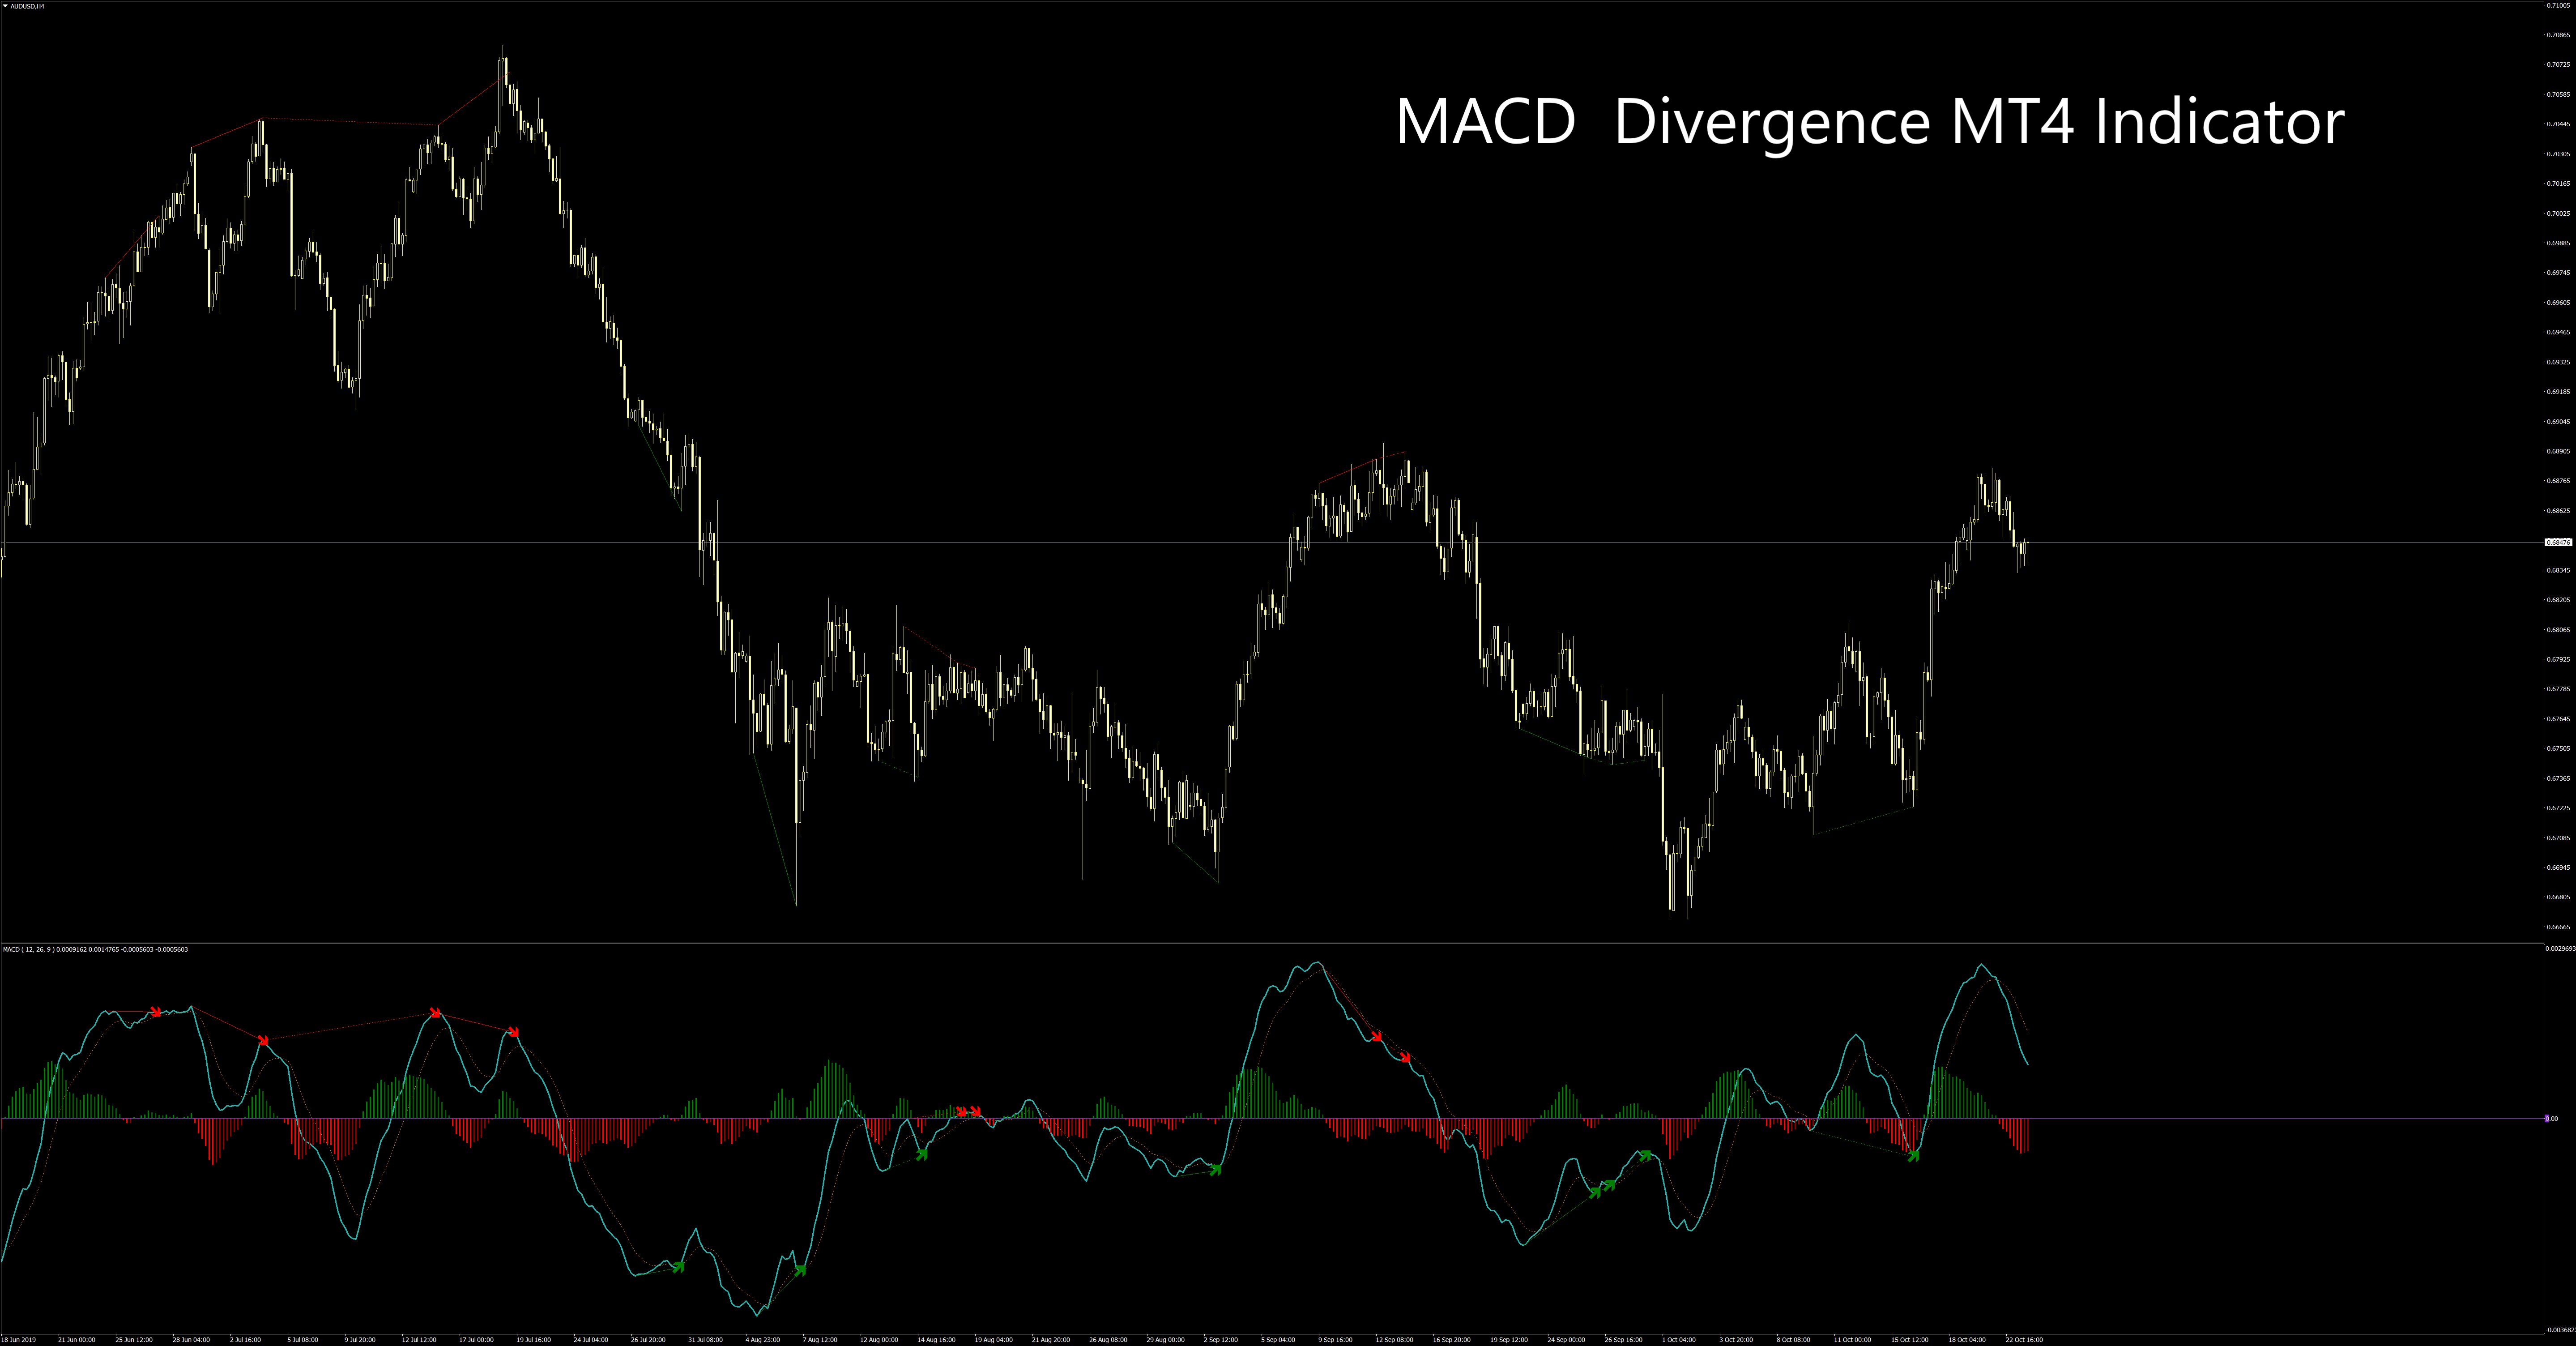 MACD Divergence Indicator on AUDUSD